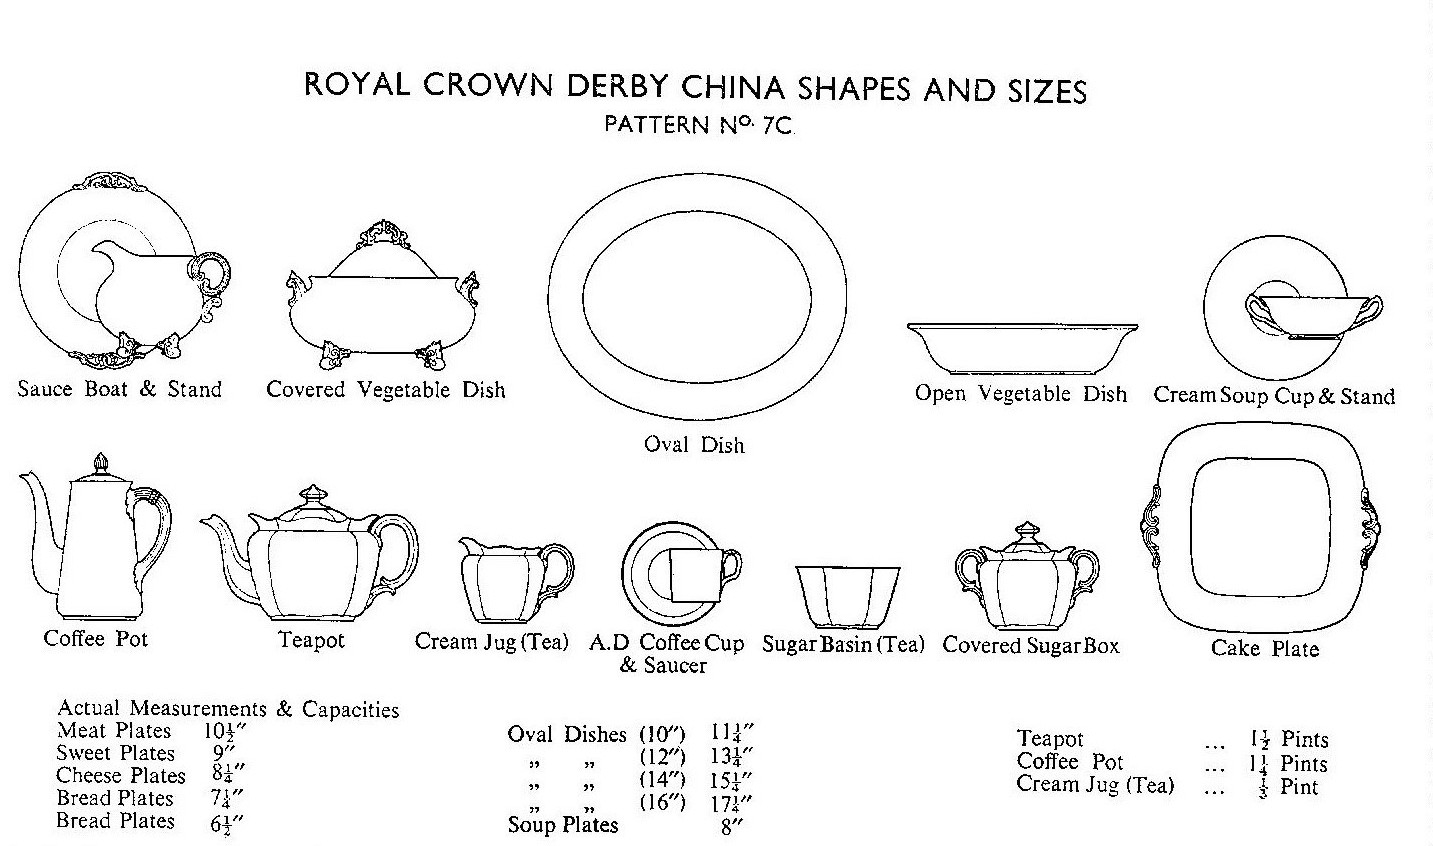 royal-crown-derby-thomas-goode-cataloge-undated-shape-outlines-dublin-dover